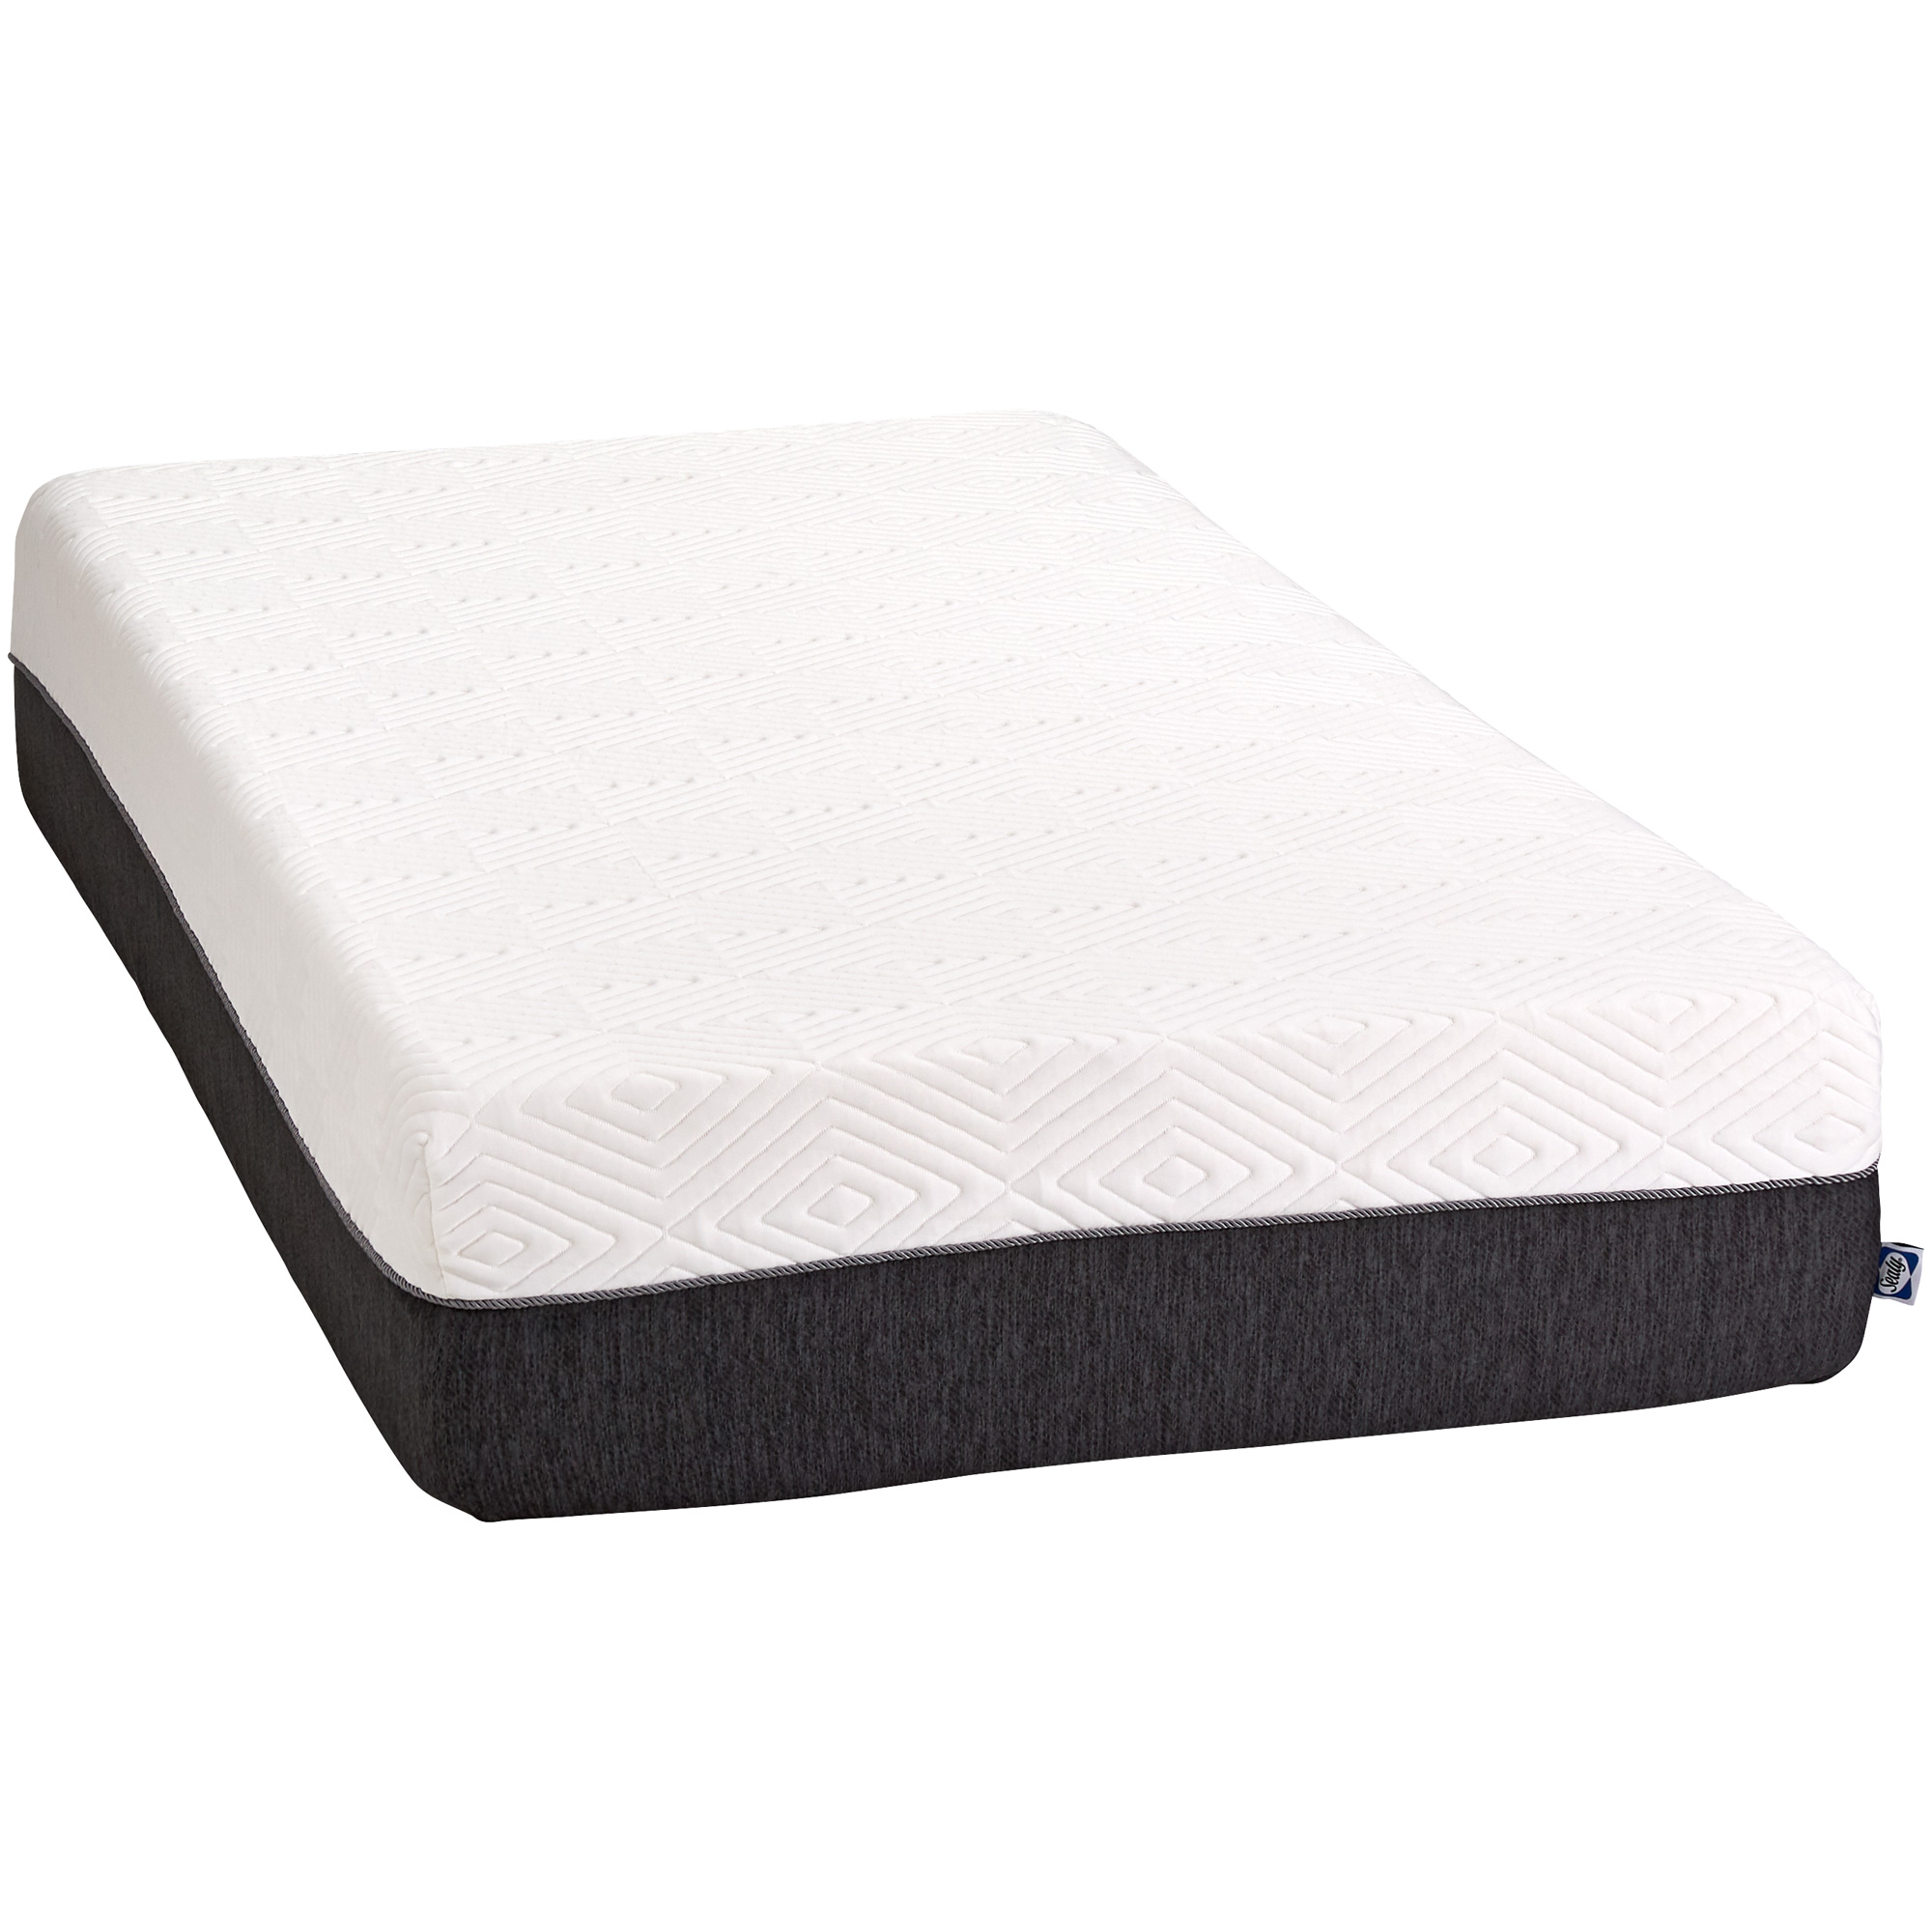 """Slumbercrest 12"""" Memory Foam Twin Mattress in a Box"""